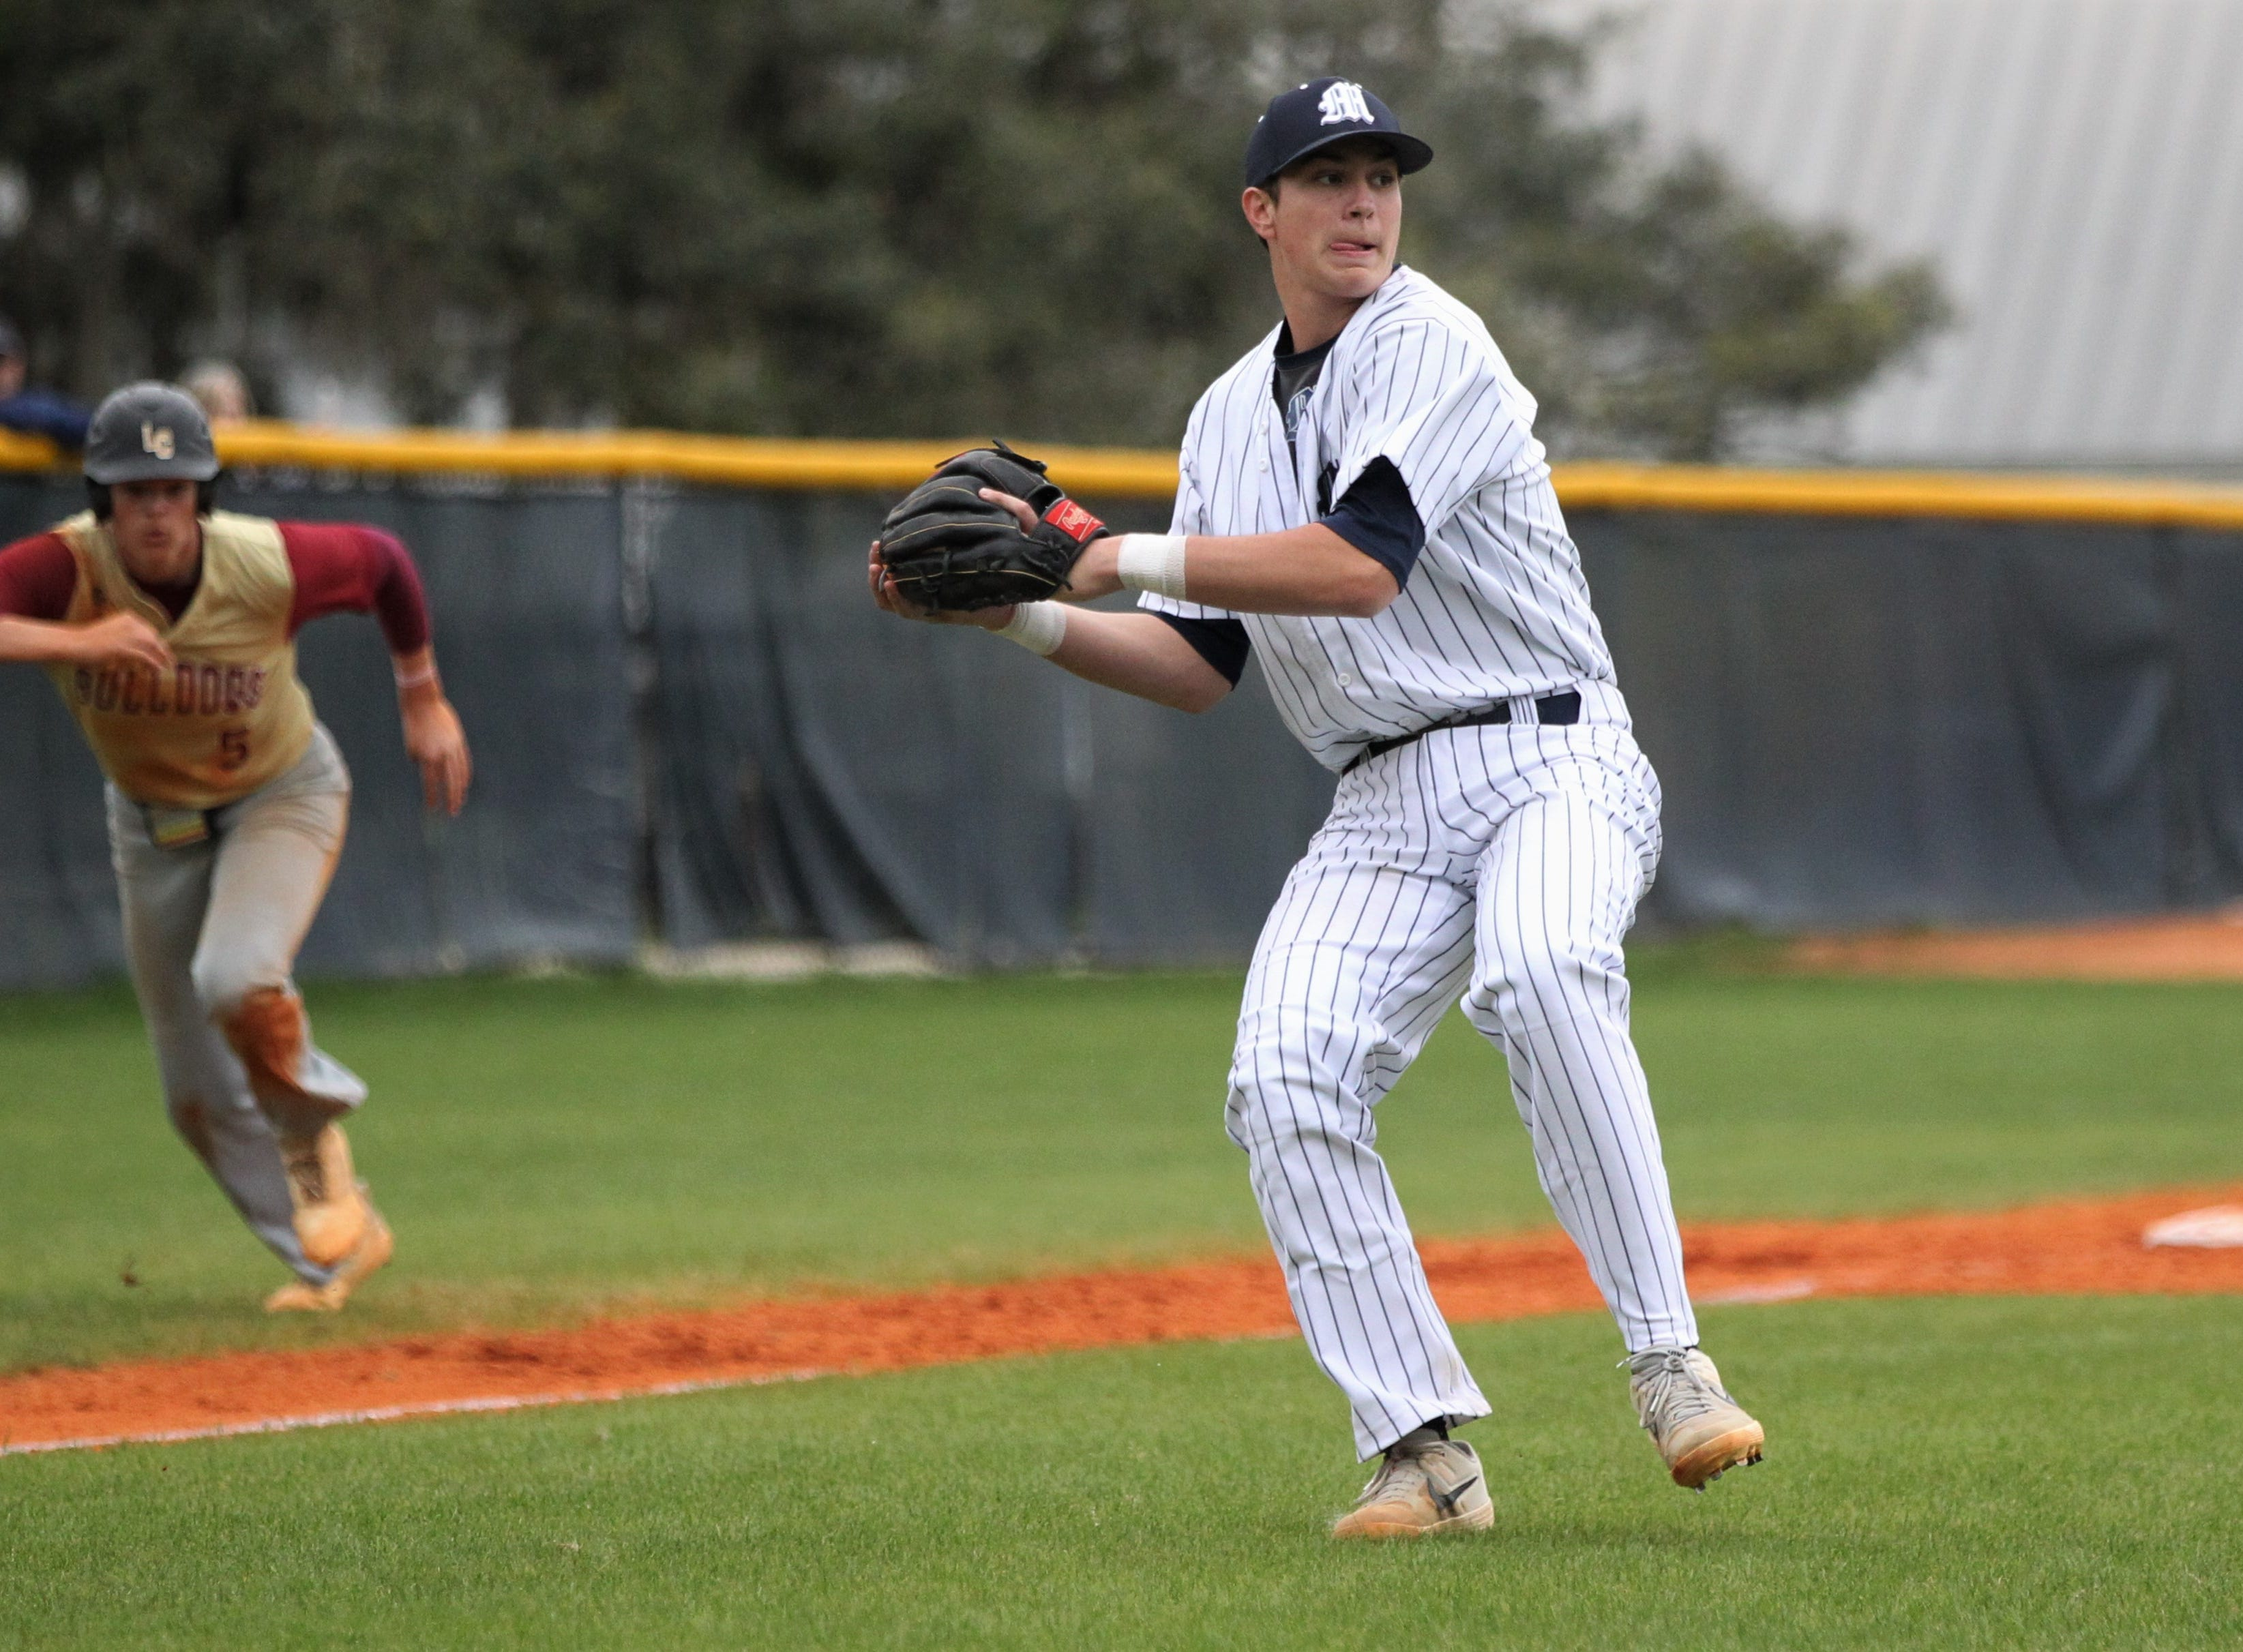 Maclay third baseman Jason Norris fields a bunt and throws to first as Liberty County's baseball team went on the road to beat Maclay 8-2 on Saturday, March 16, 2019. The Bulldogs played their first game following their head coach Corey Crum's tragic death six days ago.